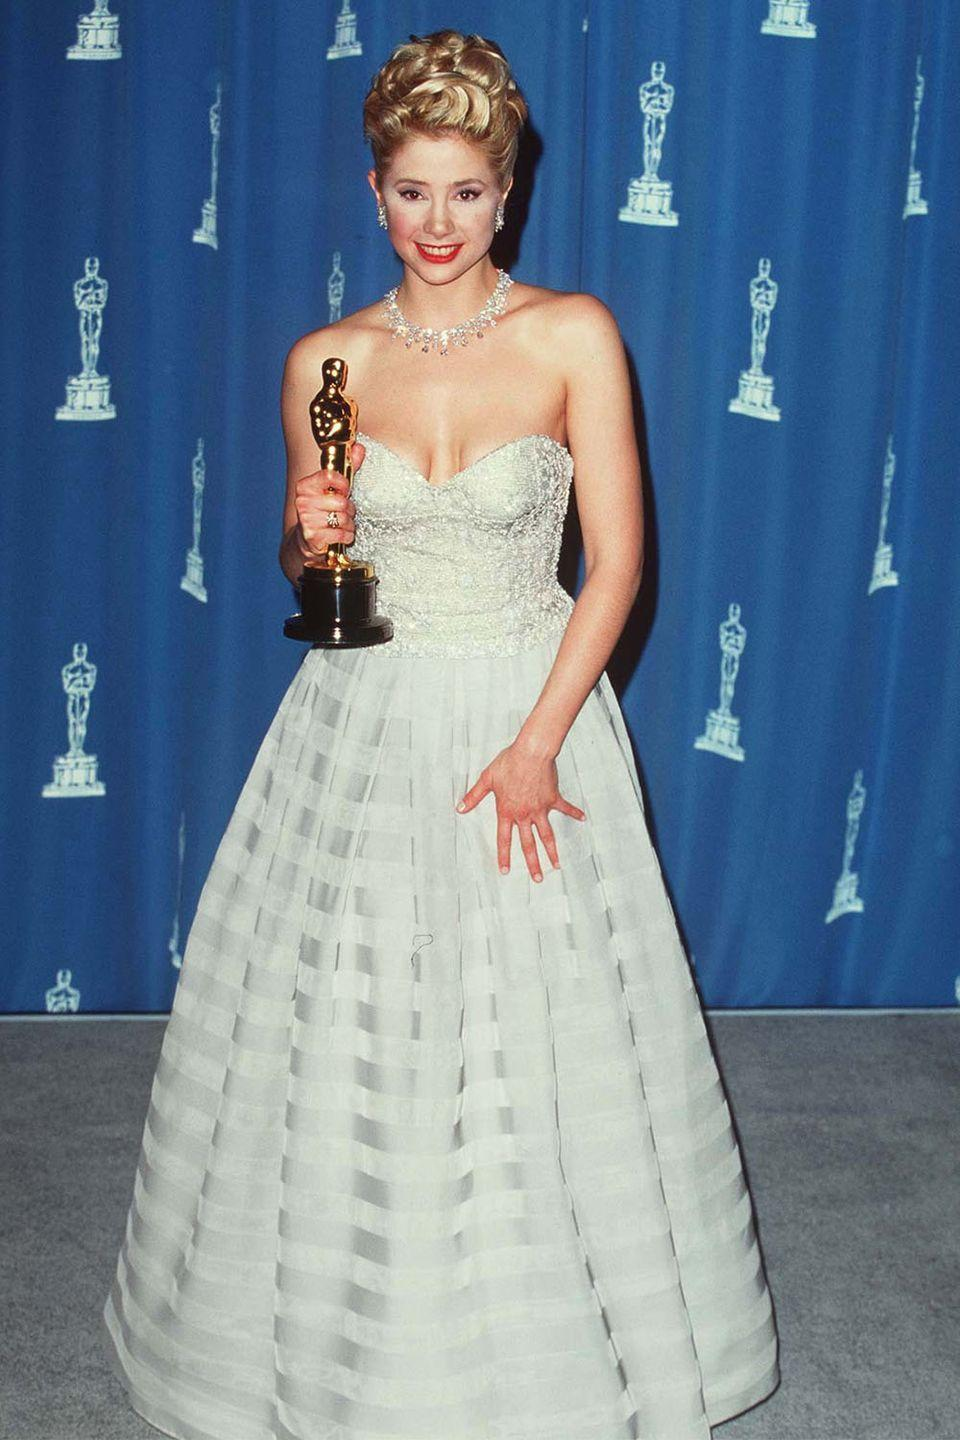 <p>As if Mira Sorvino knew she would be the winner of the night, the actress aptly dressed as a princess for her big Academy win for <em>The Mighty Aphrodite. </em></p>